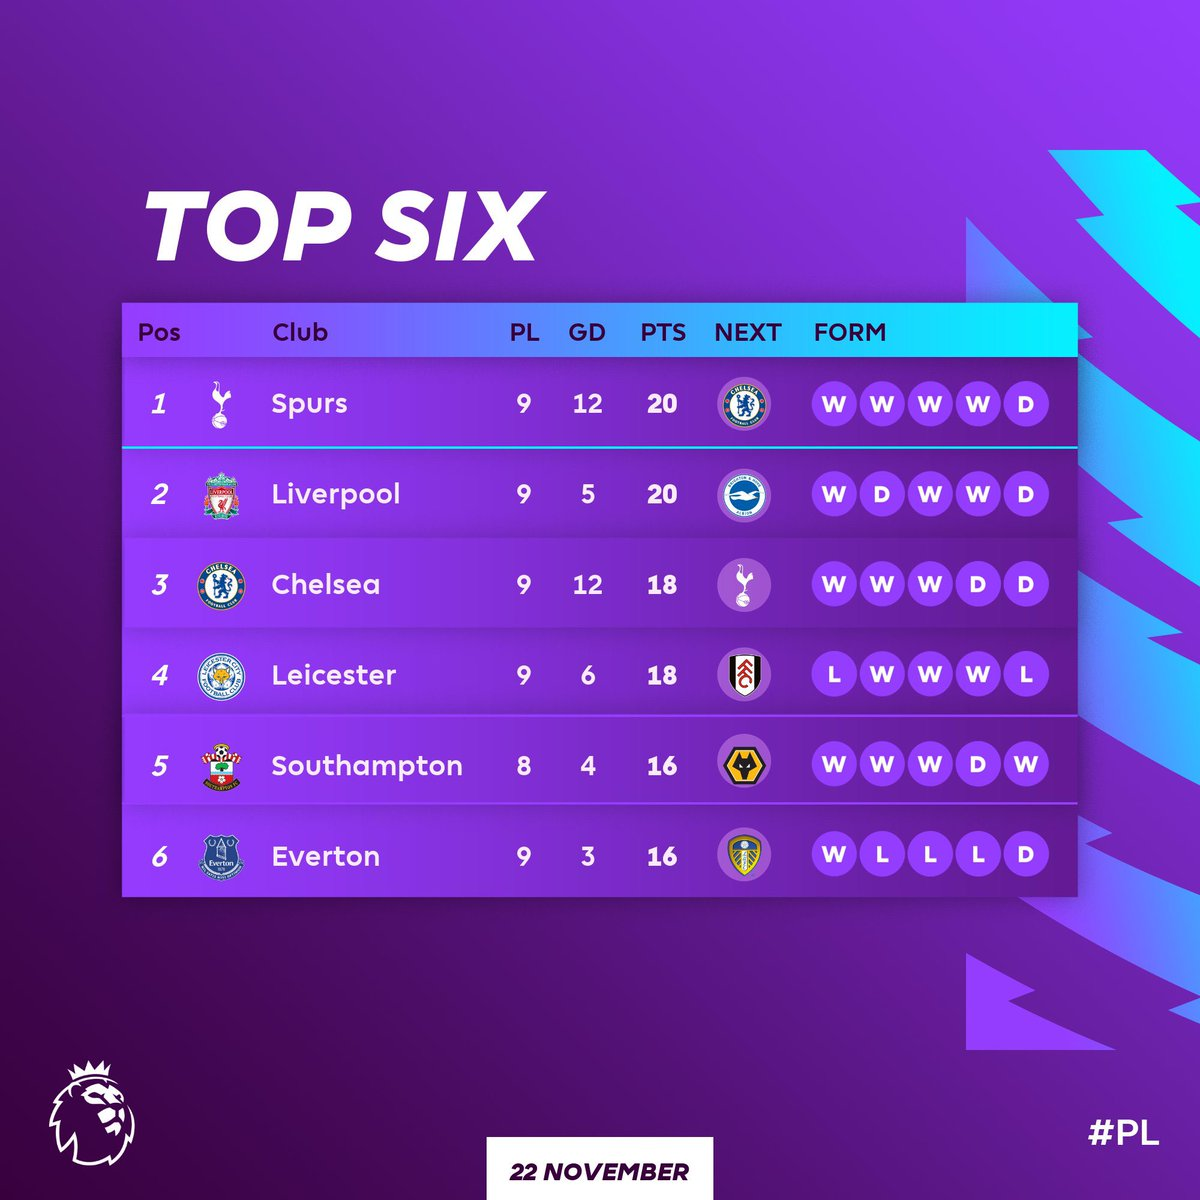 Jose leads the way 🔝 #PL